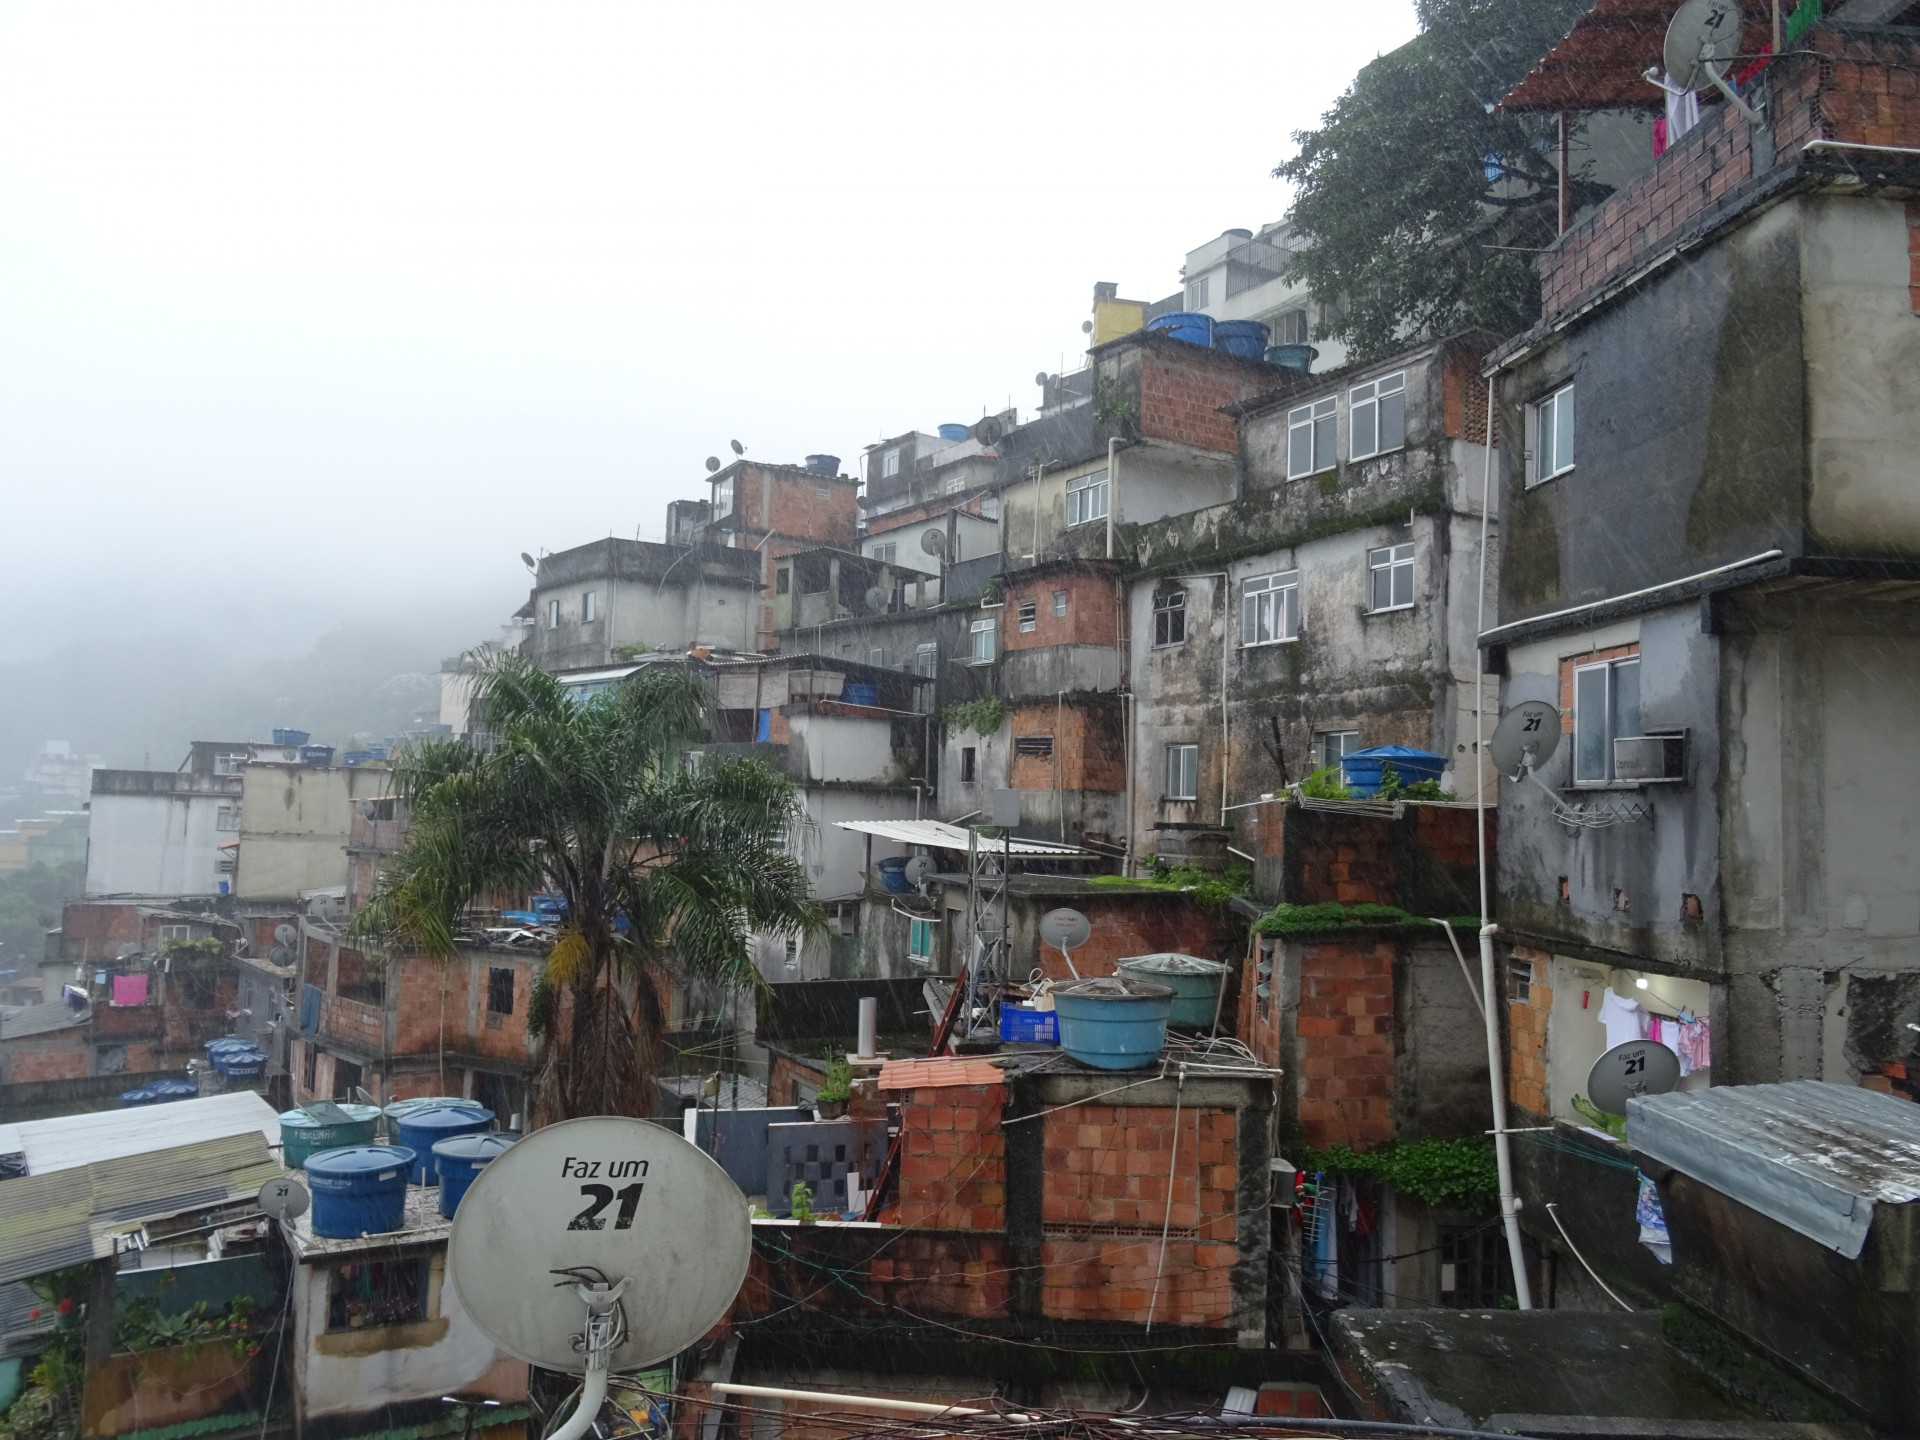 It looks like a favela.